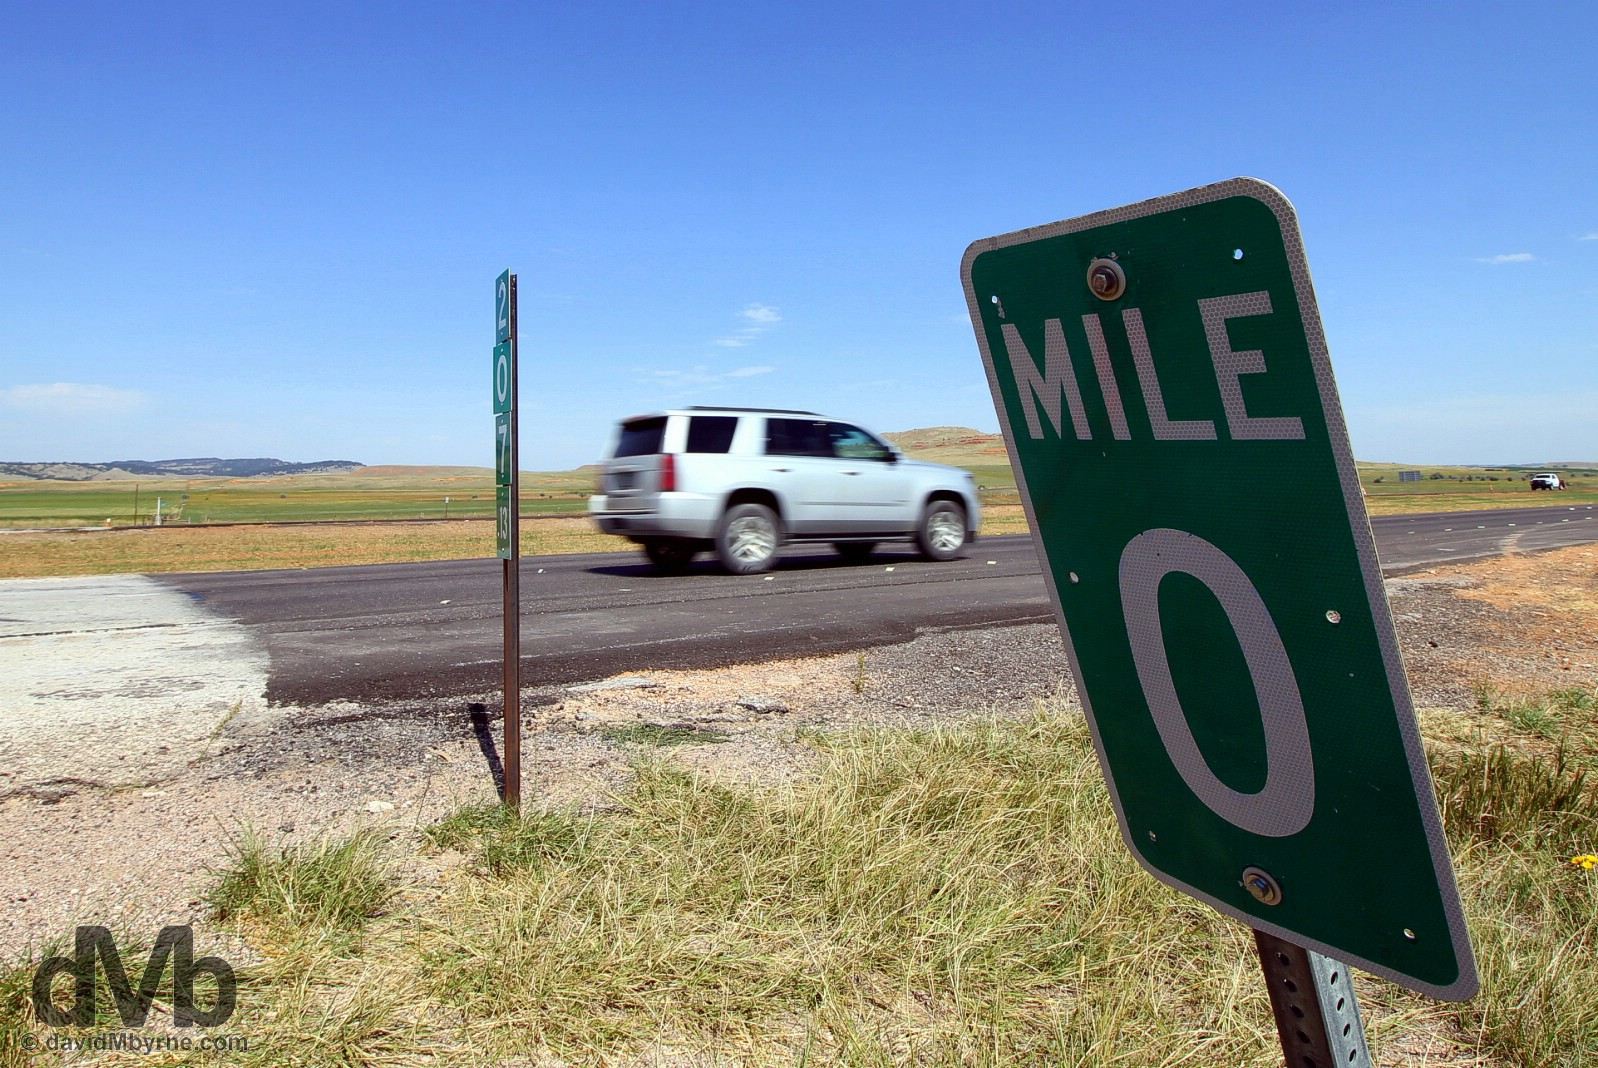 Zero mile marker on the South Dakota-Wyoming state line on Interstate 90, USA. September 3, 2016.